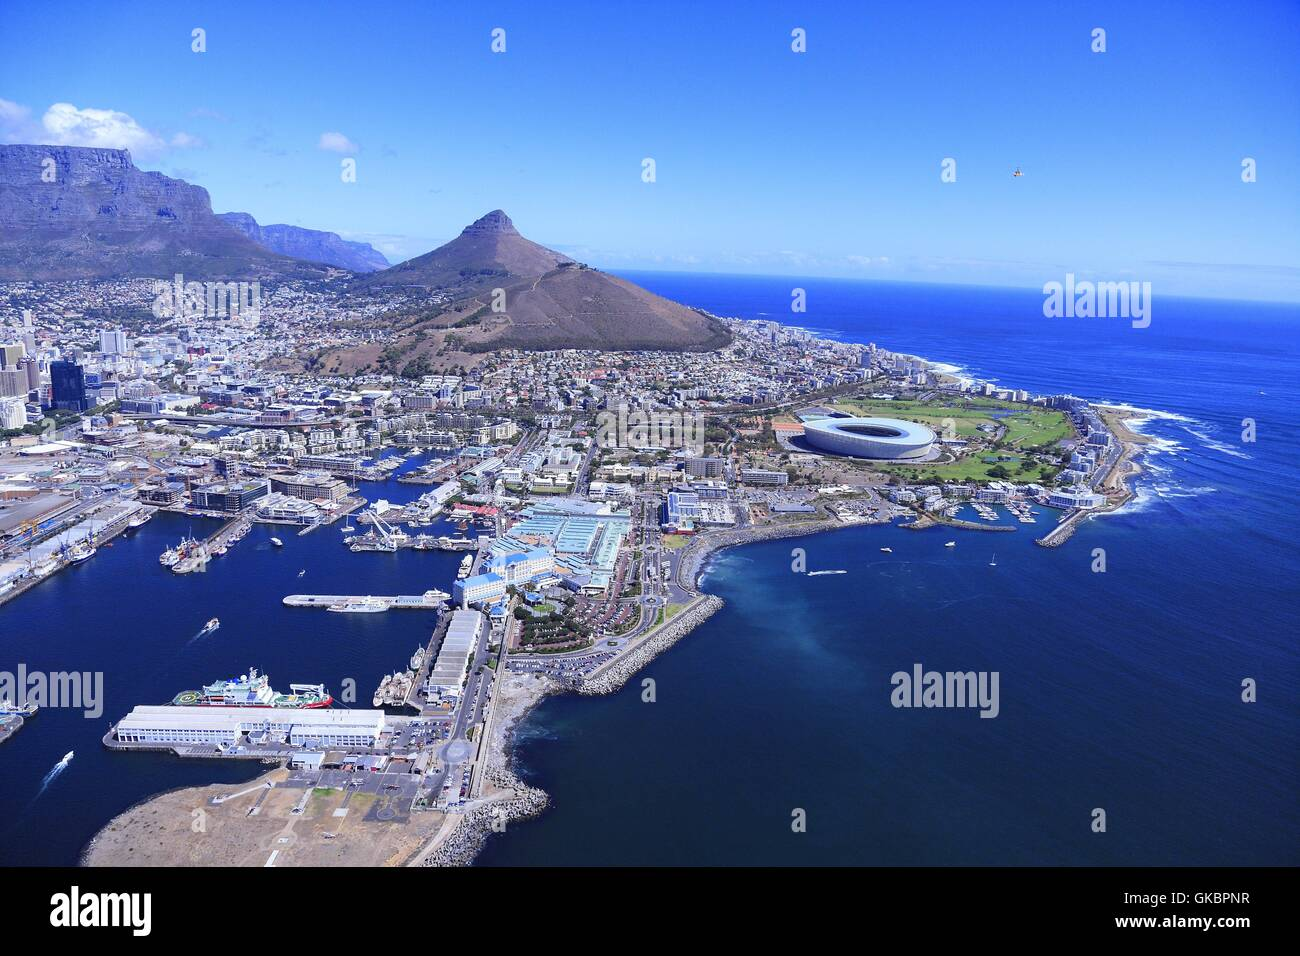 Aerial View Of Parts Of Capetown With The Harbour The Victoria And